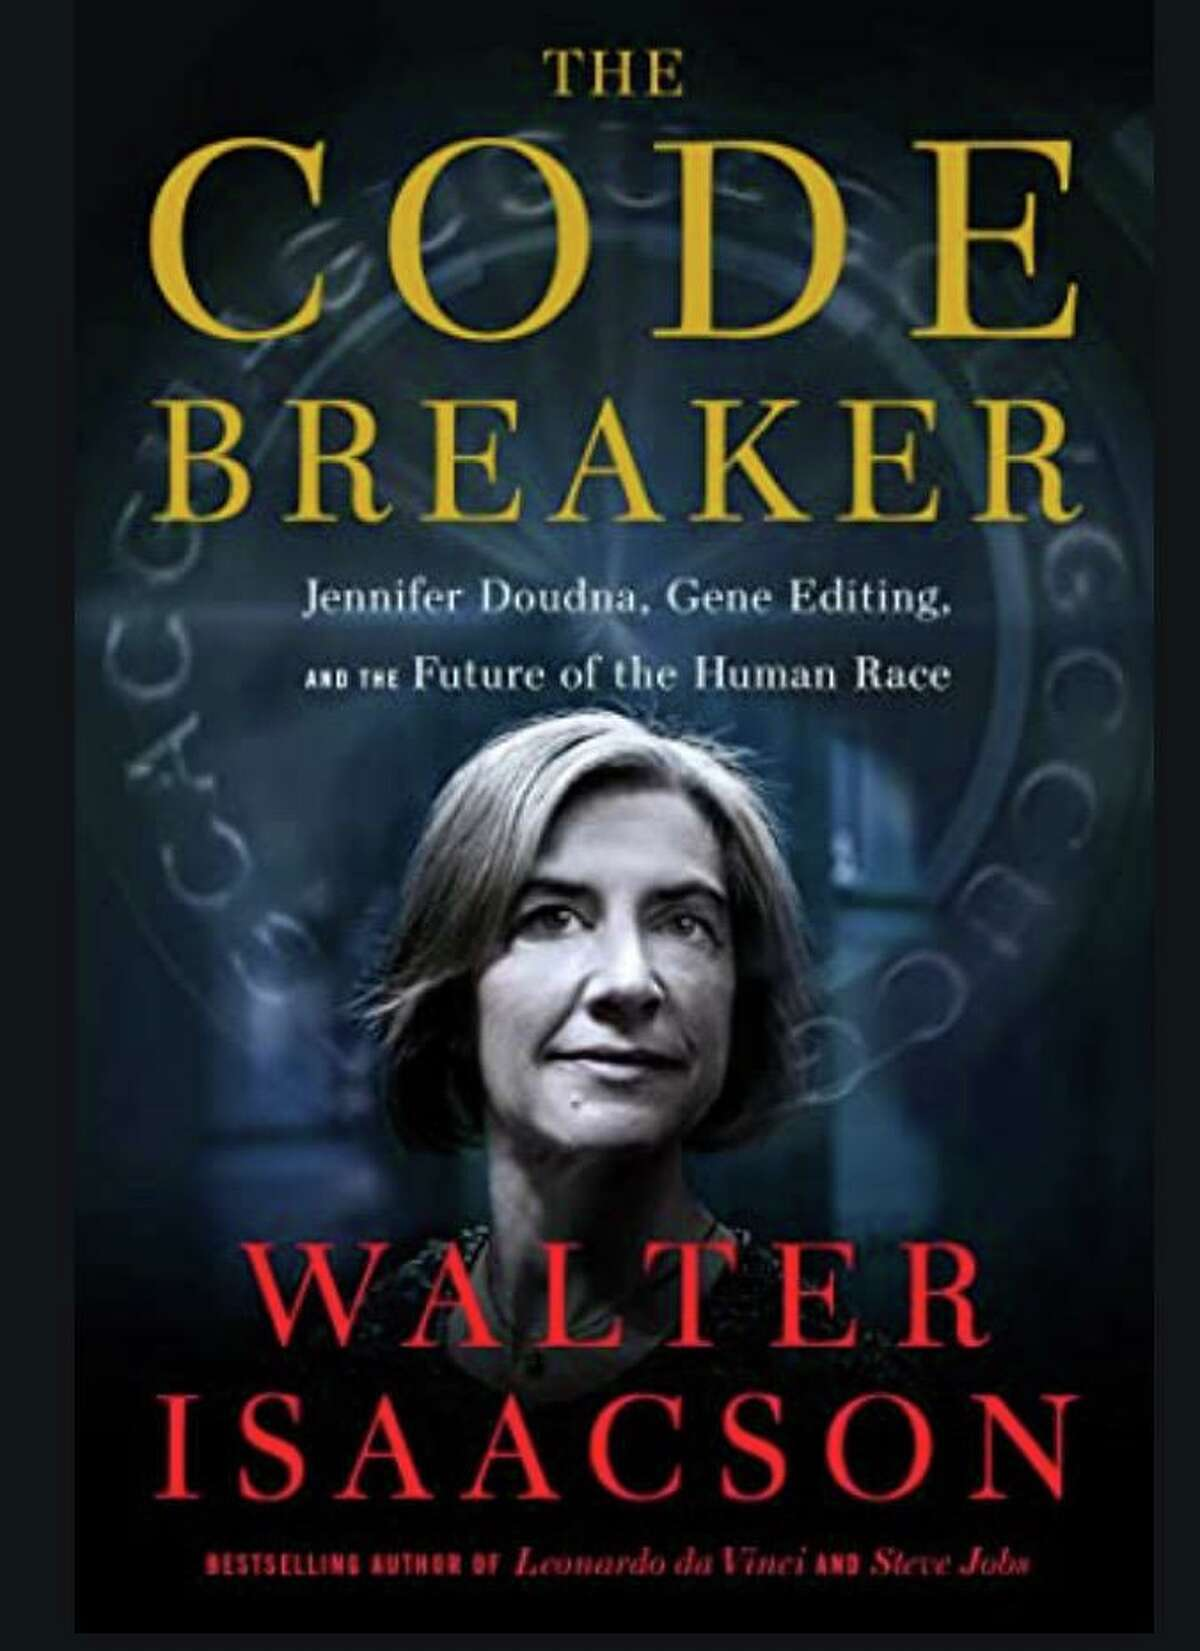 """Barrett Bookstore, and the Darien Community Association are welcoming Walter Isaacson, a bestselling author, for a conversation with Wendy Kopp, the CEO, and cofounder of Teach Teach For All, to discuss Isaacon's new book titled: """"The Code Breaker: Jennifer Doudna, Gene Editing, and the Future of the Human Race,"""" April 7, at 7 p.m. on Crowdcast."""